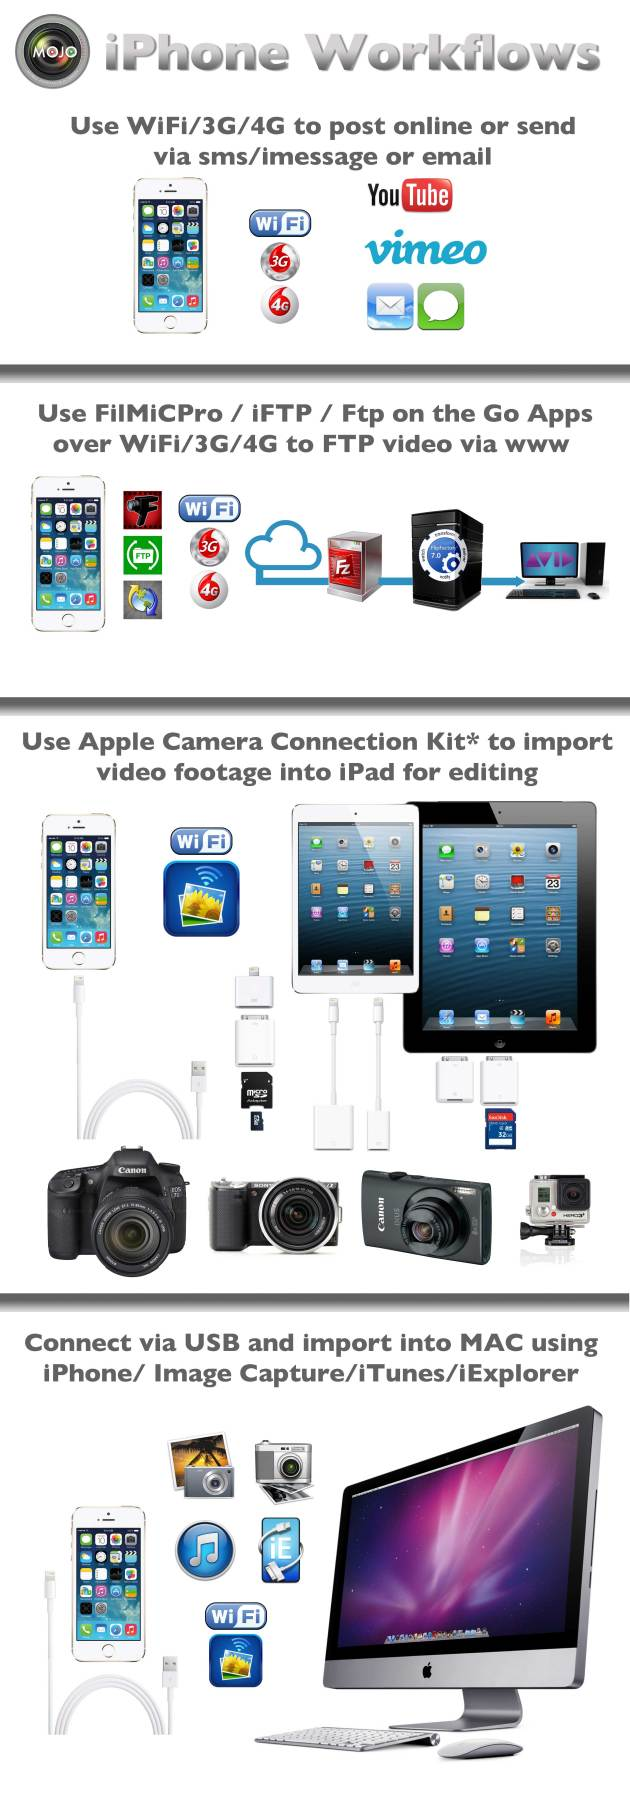 A selection (not exhaustive) of iPhone media workflows as an infographic of sorts